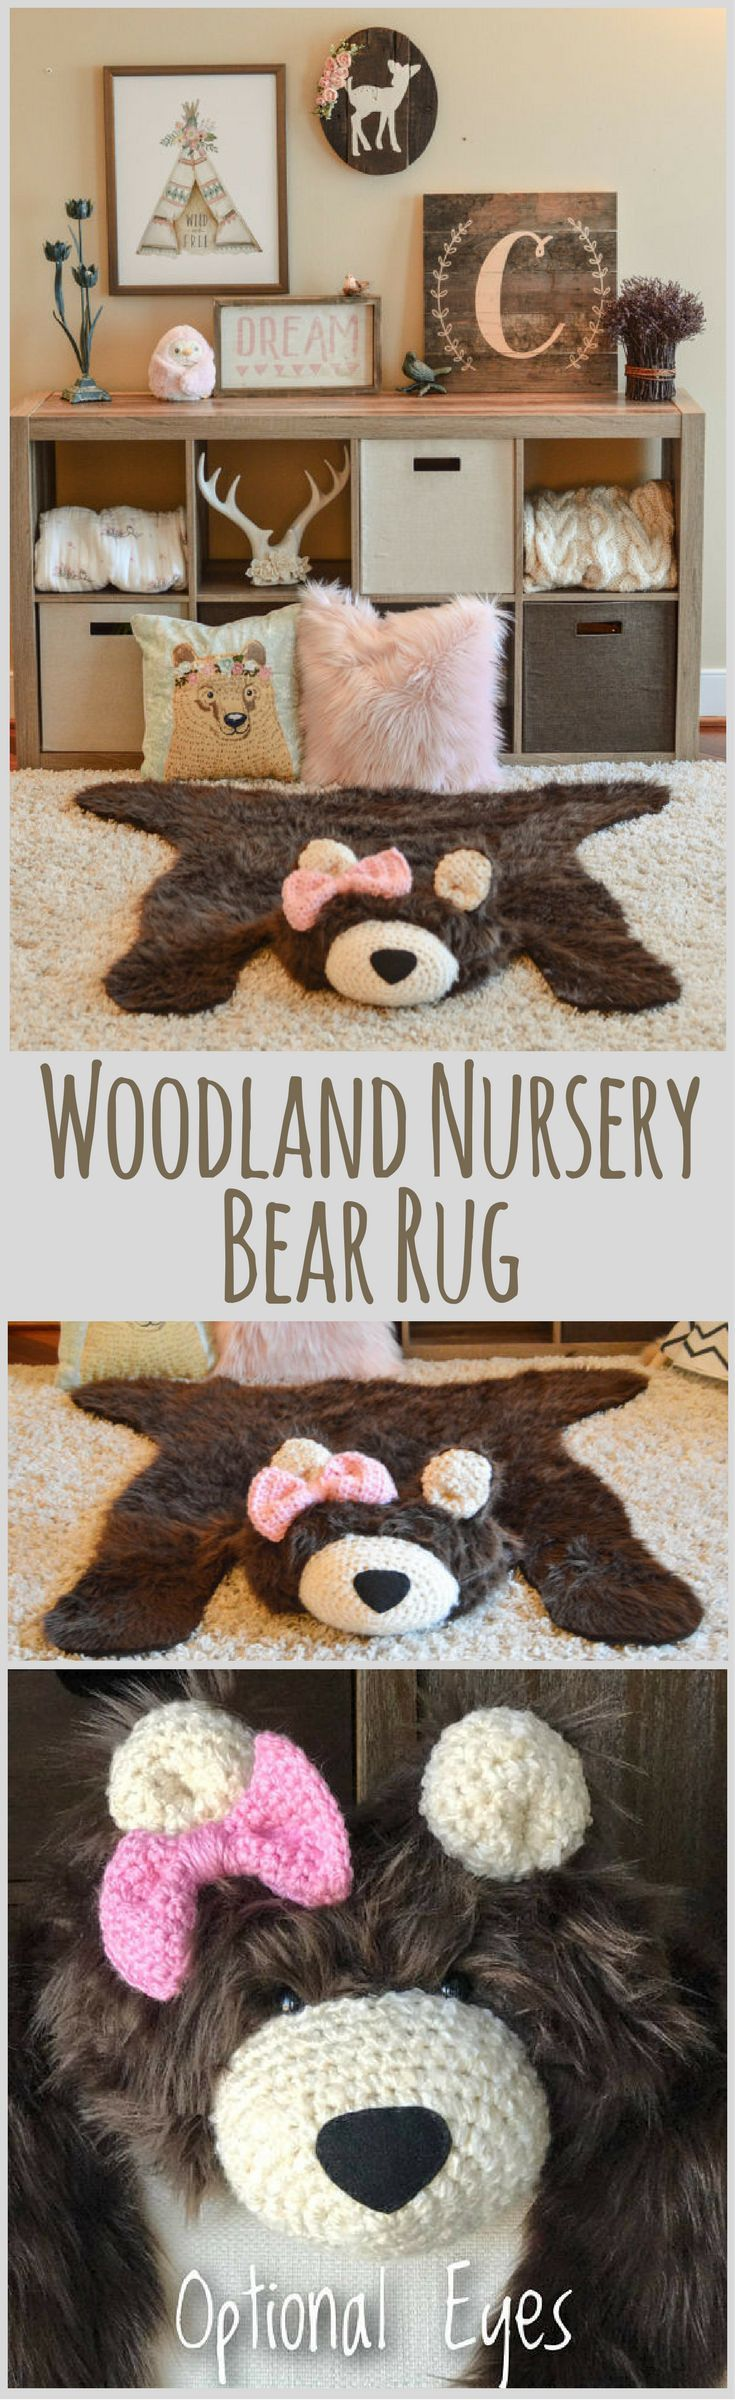 Maybe the cutest thing I've ever seen?? And it fits right in with the rustic farmhouse look that I go for! Baby Girl's Woodland Nursery Teddy Bear Faux Bearskin Rug, Girl's Bedroom, Giant Teddy Bear Rug with Pink Crochet Bow, Girl Teddy Bear, Mama Bear Rug, Woodland Nursery Theme for Girl's Bedroom. Handmade Rugs, Hand Made Bearskin Rug, Faux Fur, Rustic Woodland Nursery #affiliatelink